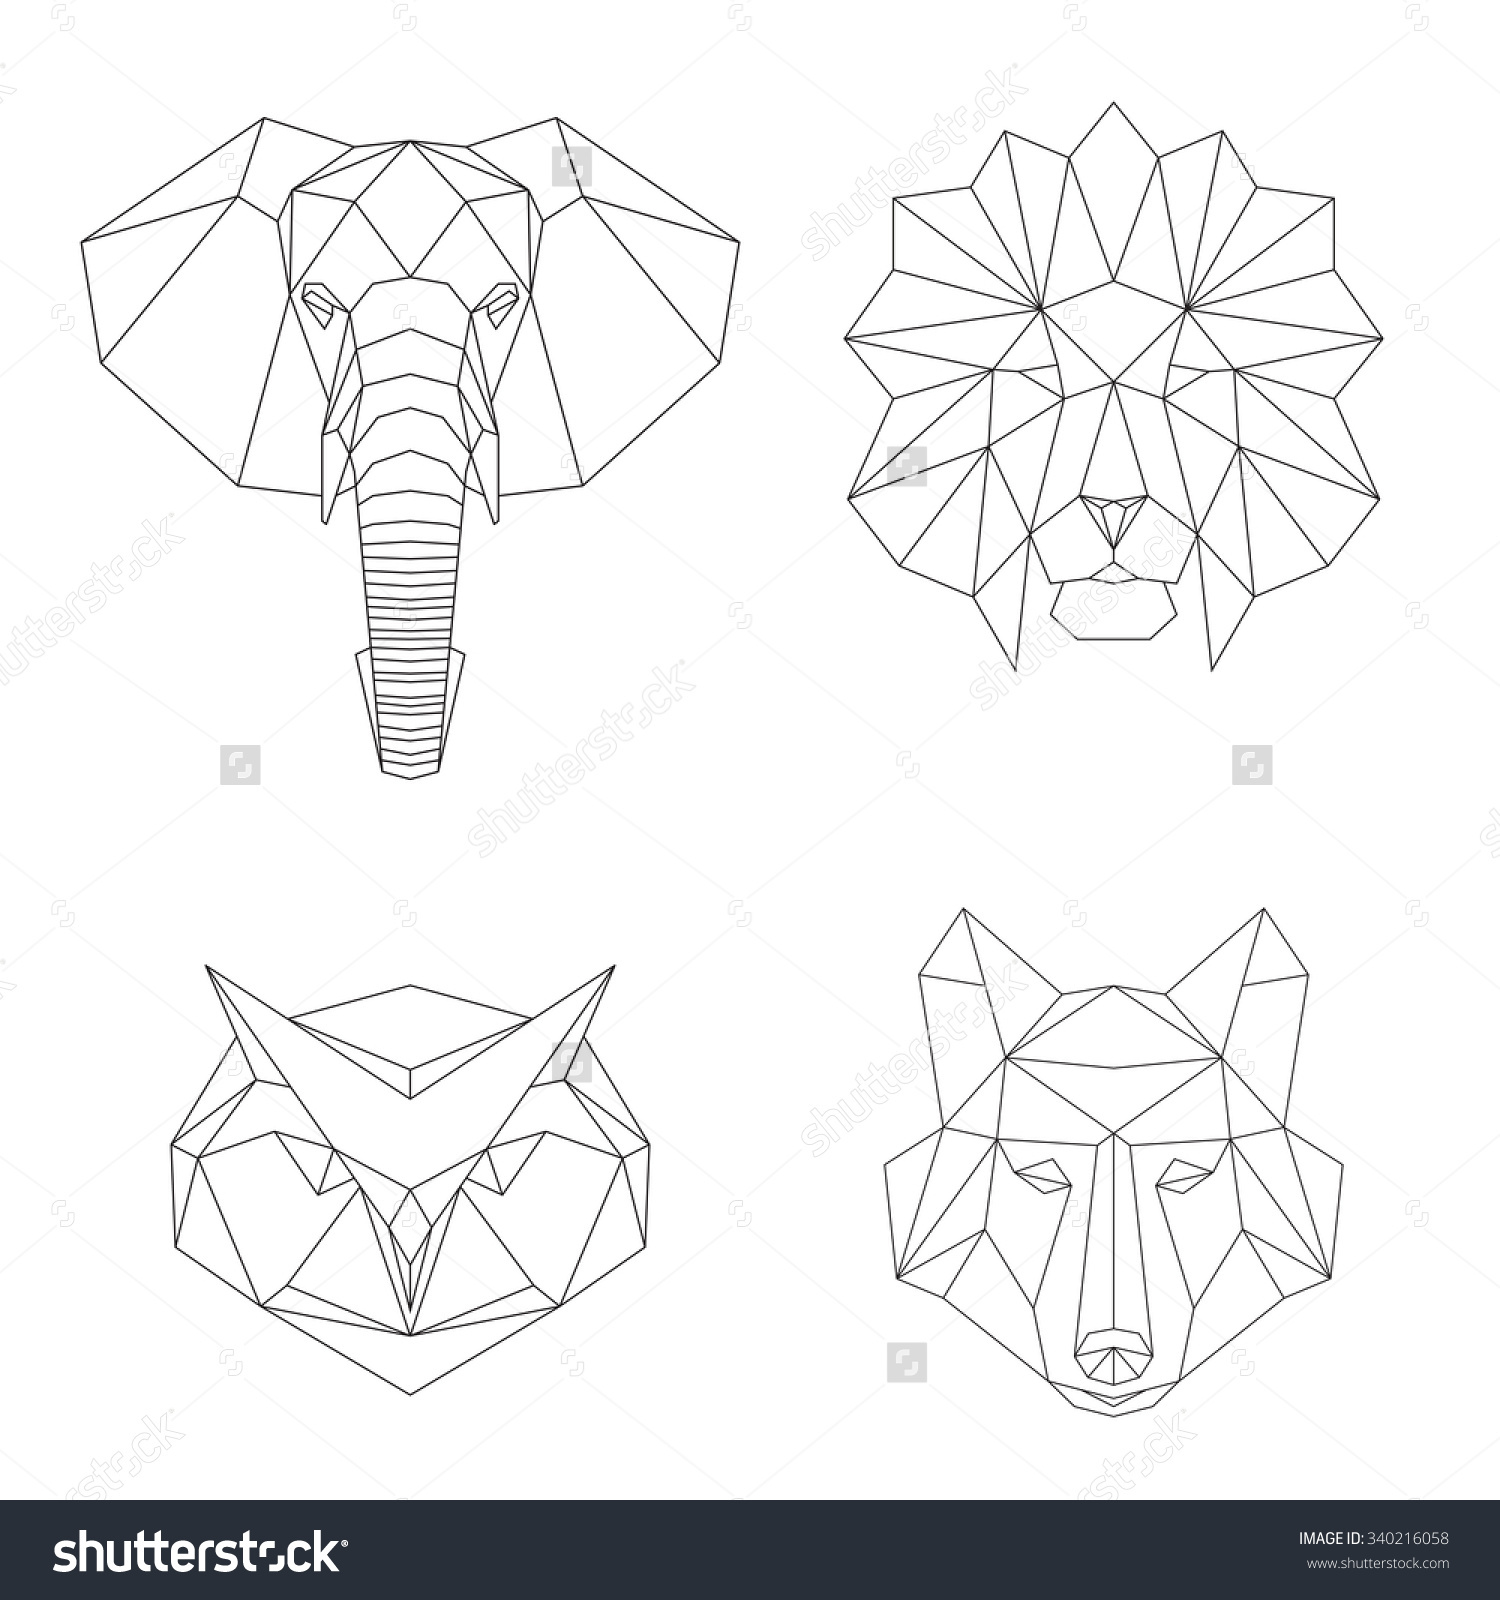 geometric owl clipart - Clipground